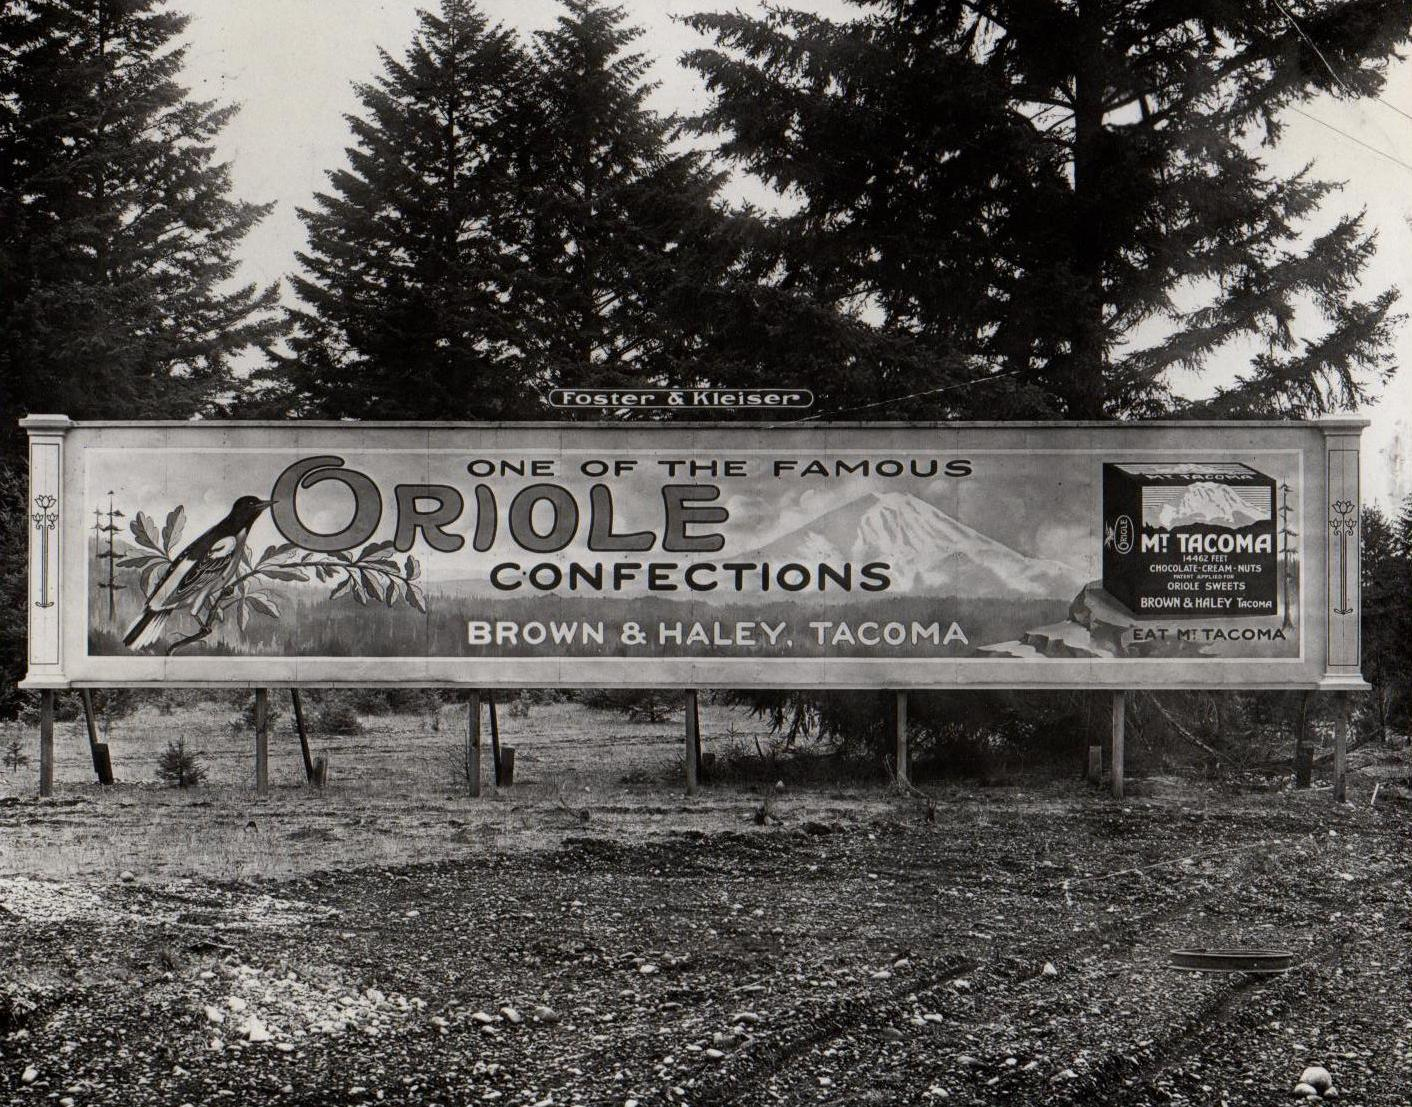 ORIOLE CONFECTIONS SIGN